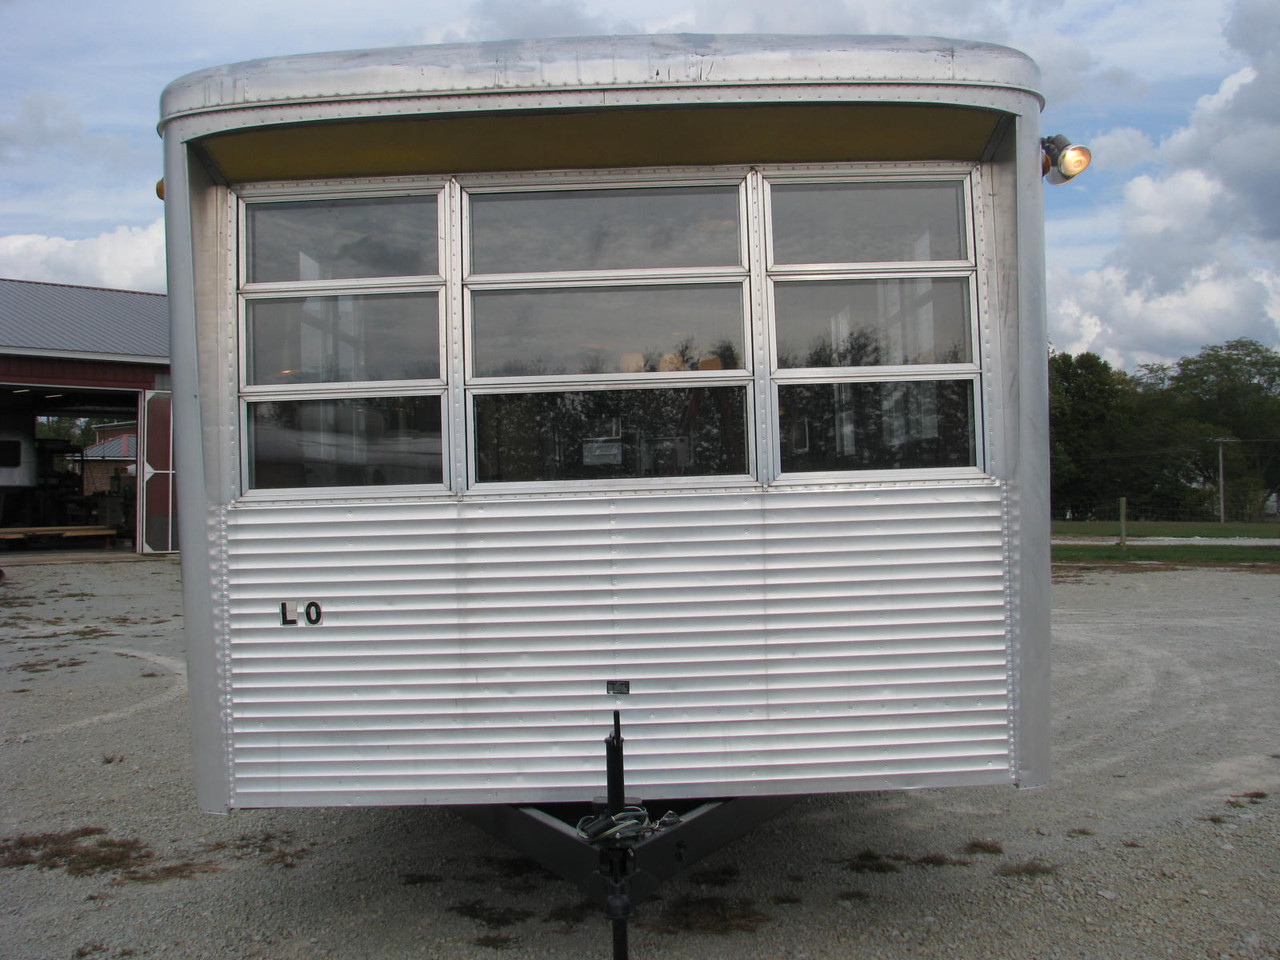 1960 Spartan 10' x 50' Carousel #S040 (SOLD J.K.J. ... on